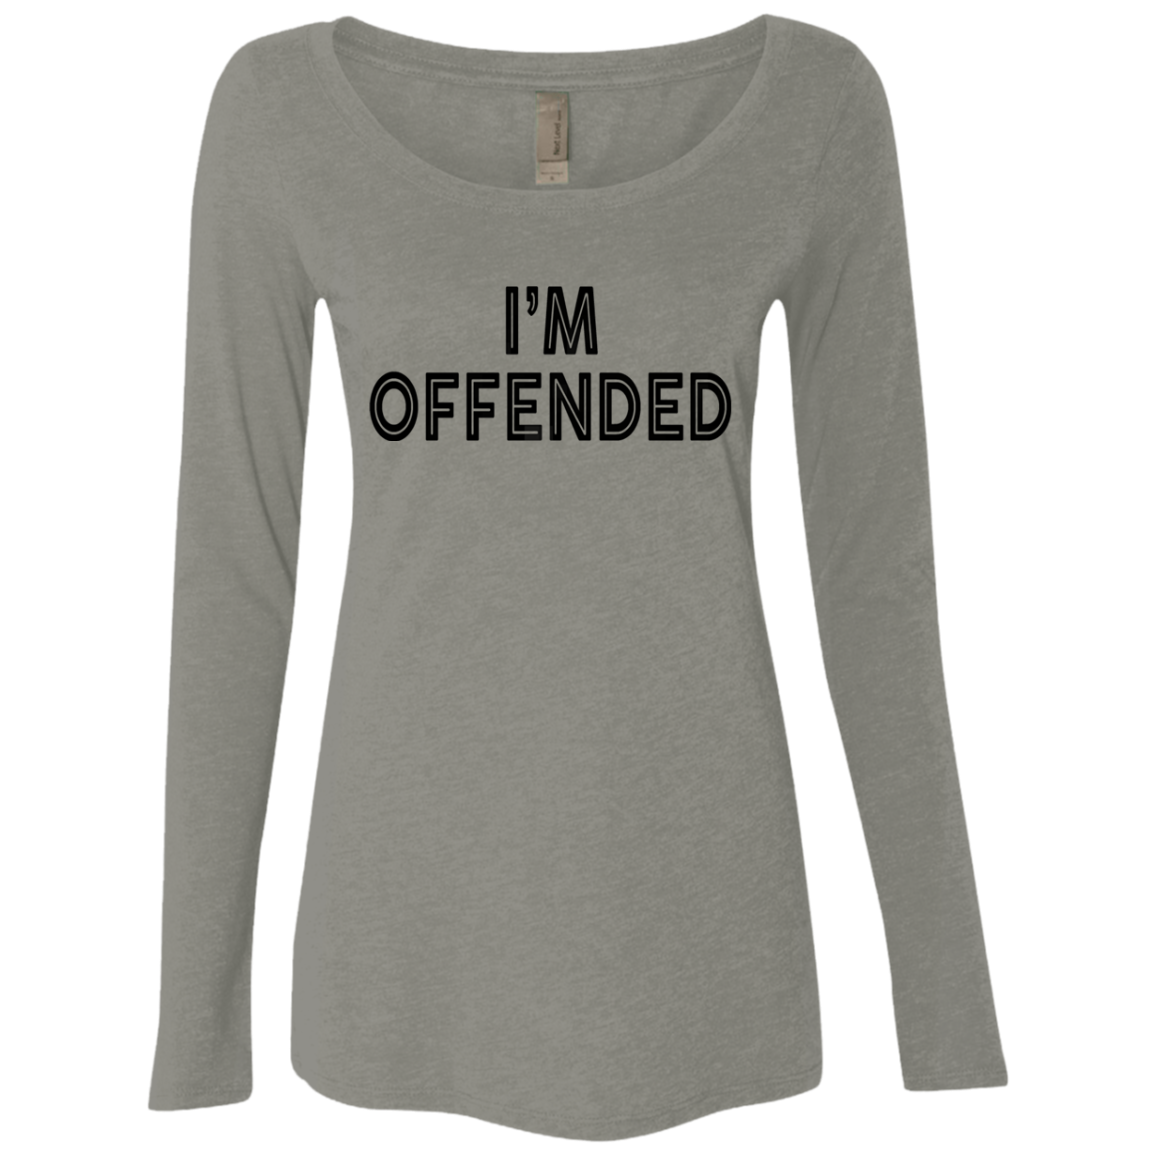 I'm Offended Women's Long Sleeve Tee